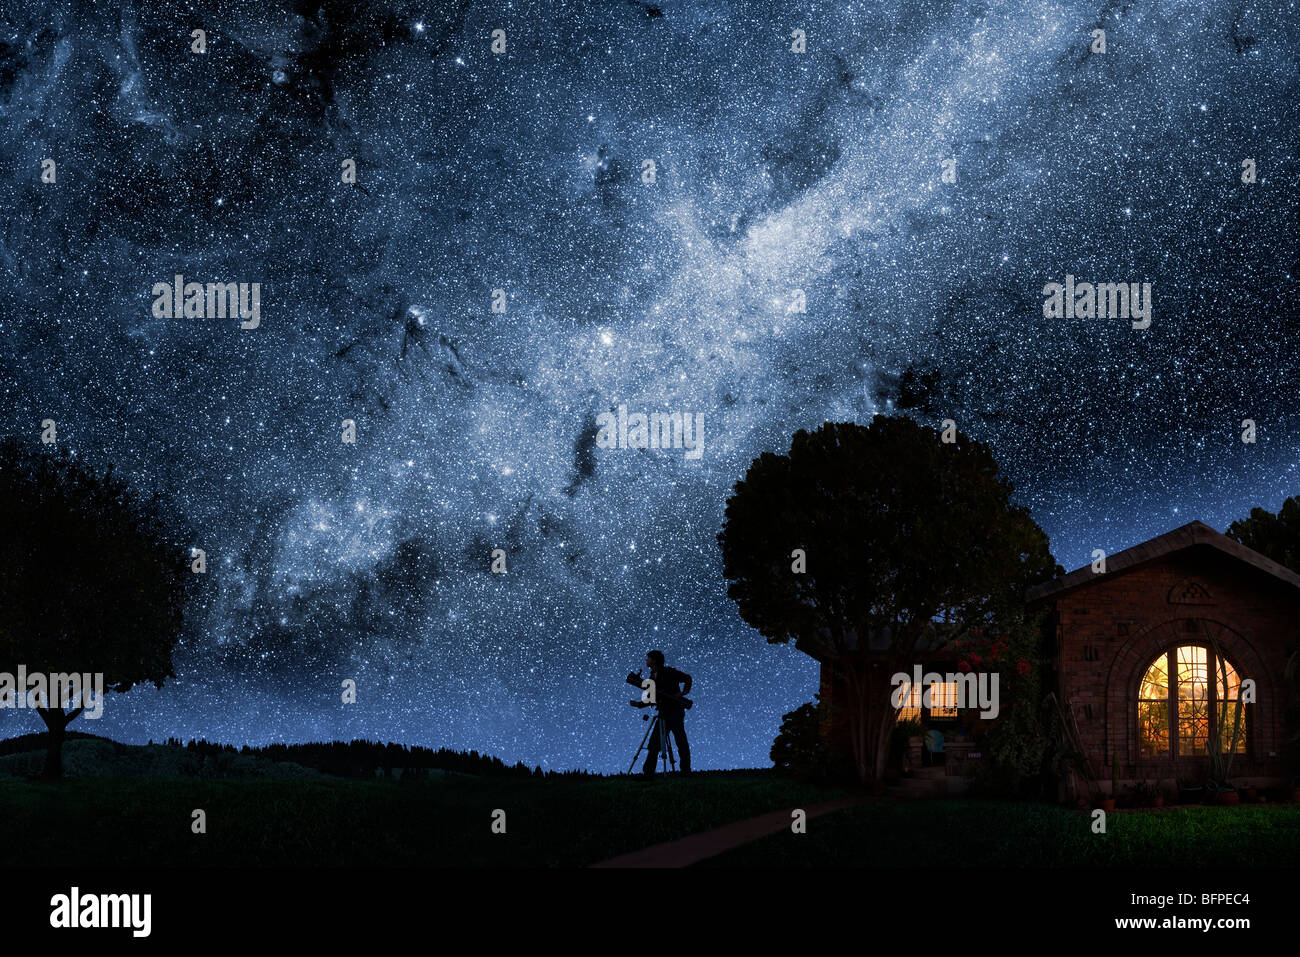 A man gazes at the Milky Way outside his house at night - Stock Image